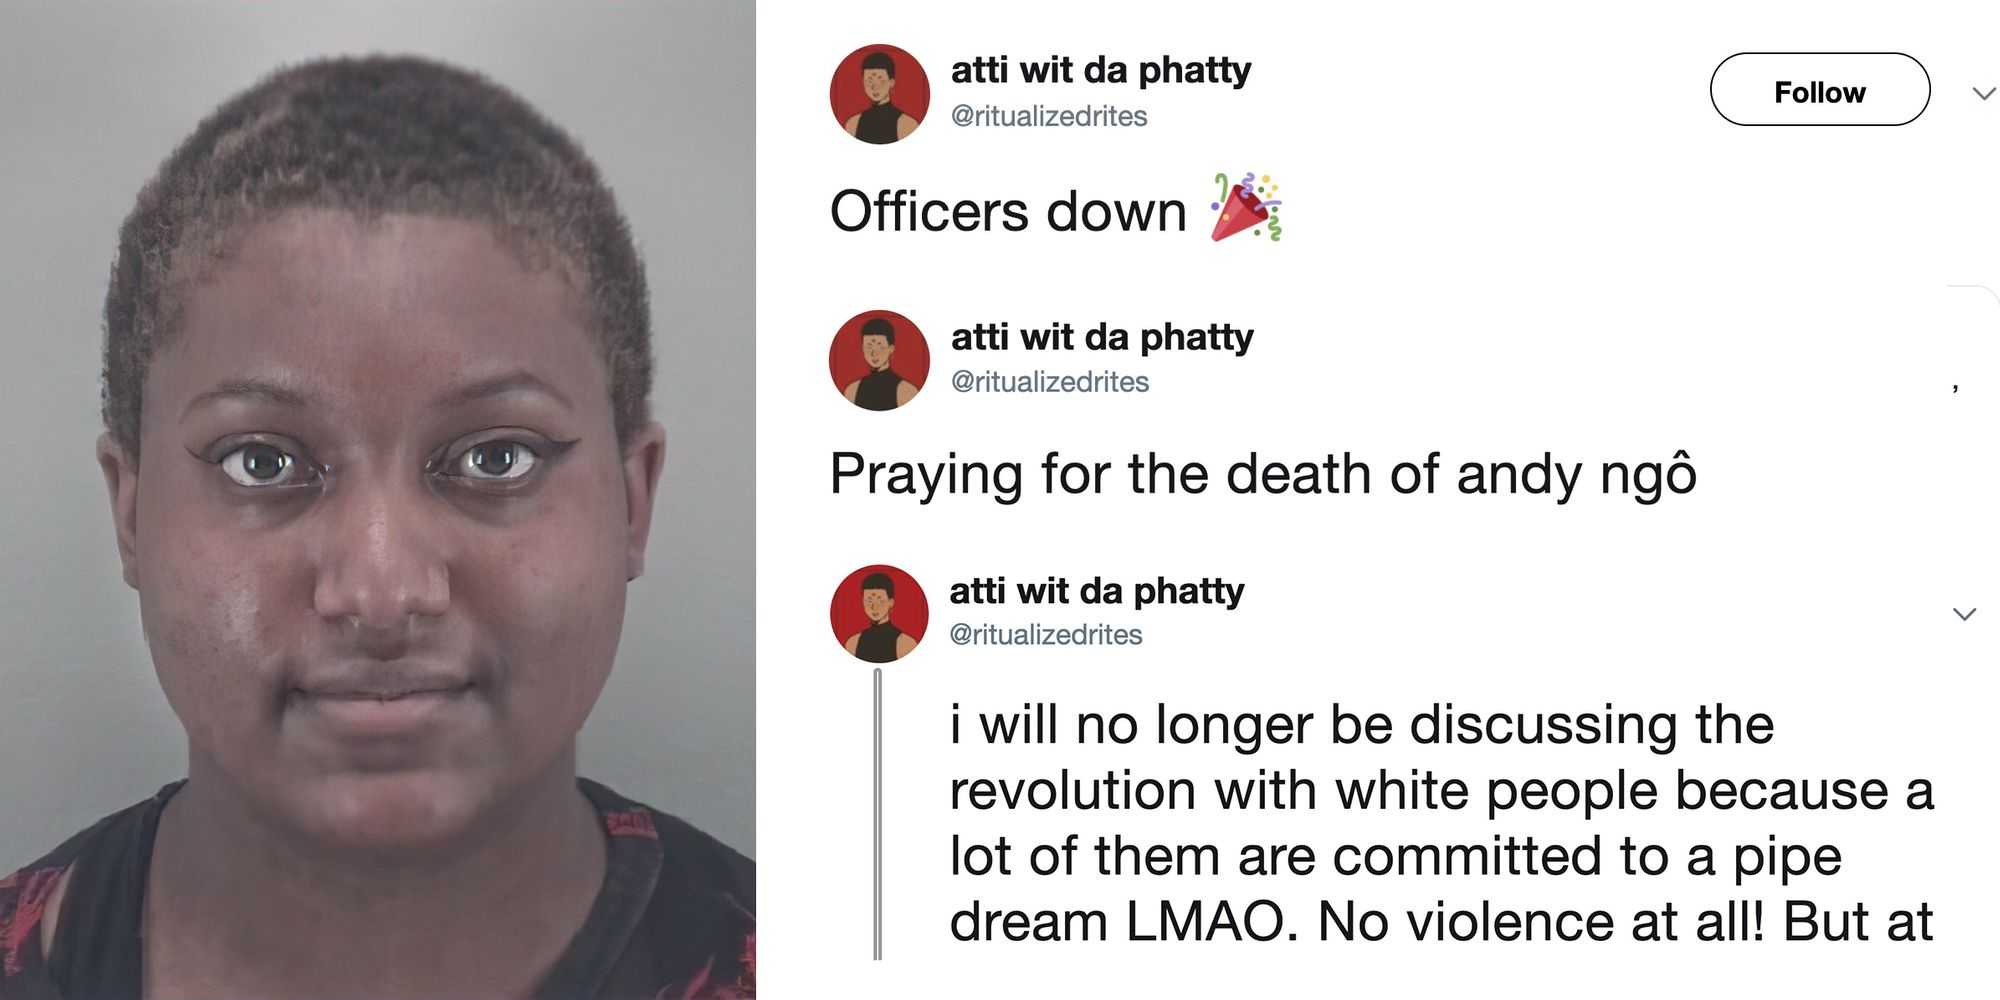 After the student body president of Virginia Commonwealth University was revealed to have advocated for the murder of cops, another student with far-left views at the college has celebrated the shooting deaths of law enforcement officers.